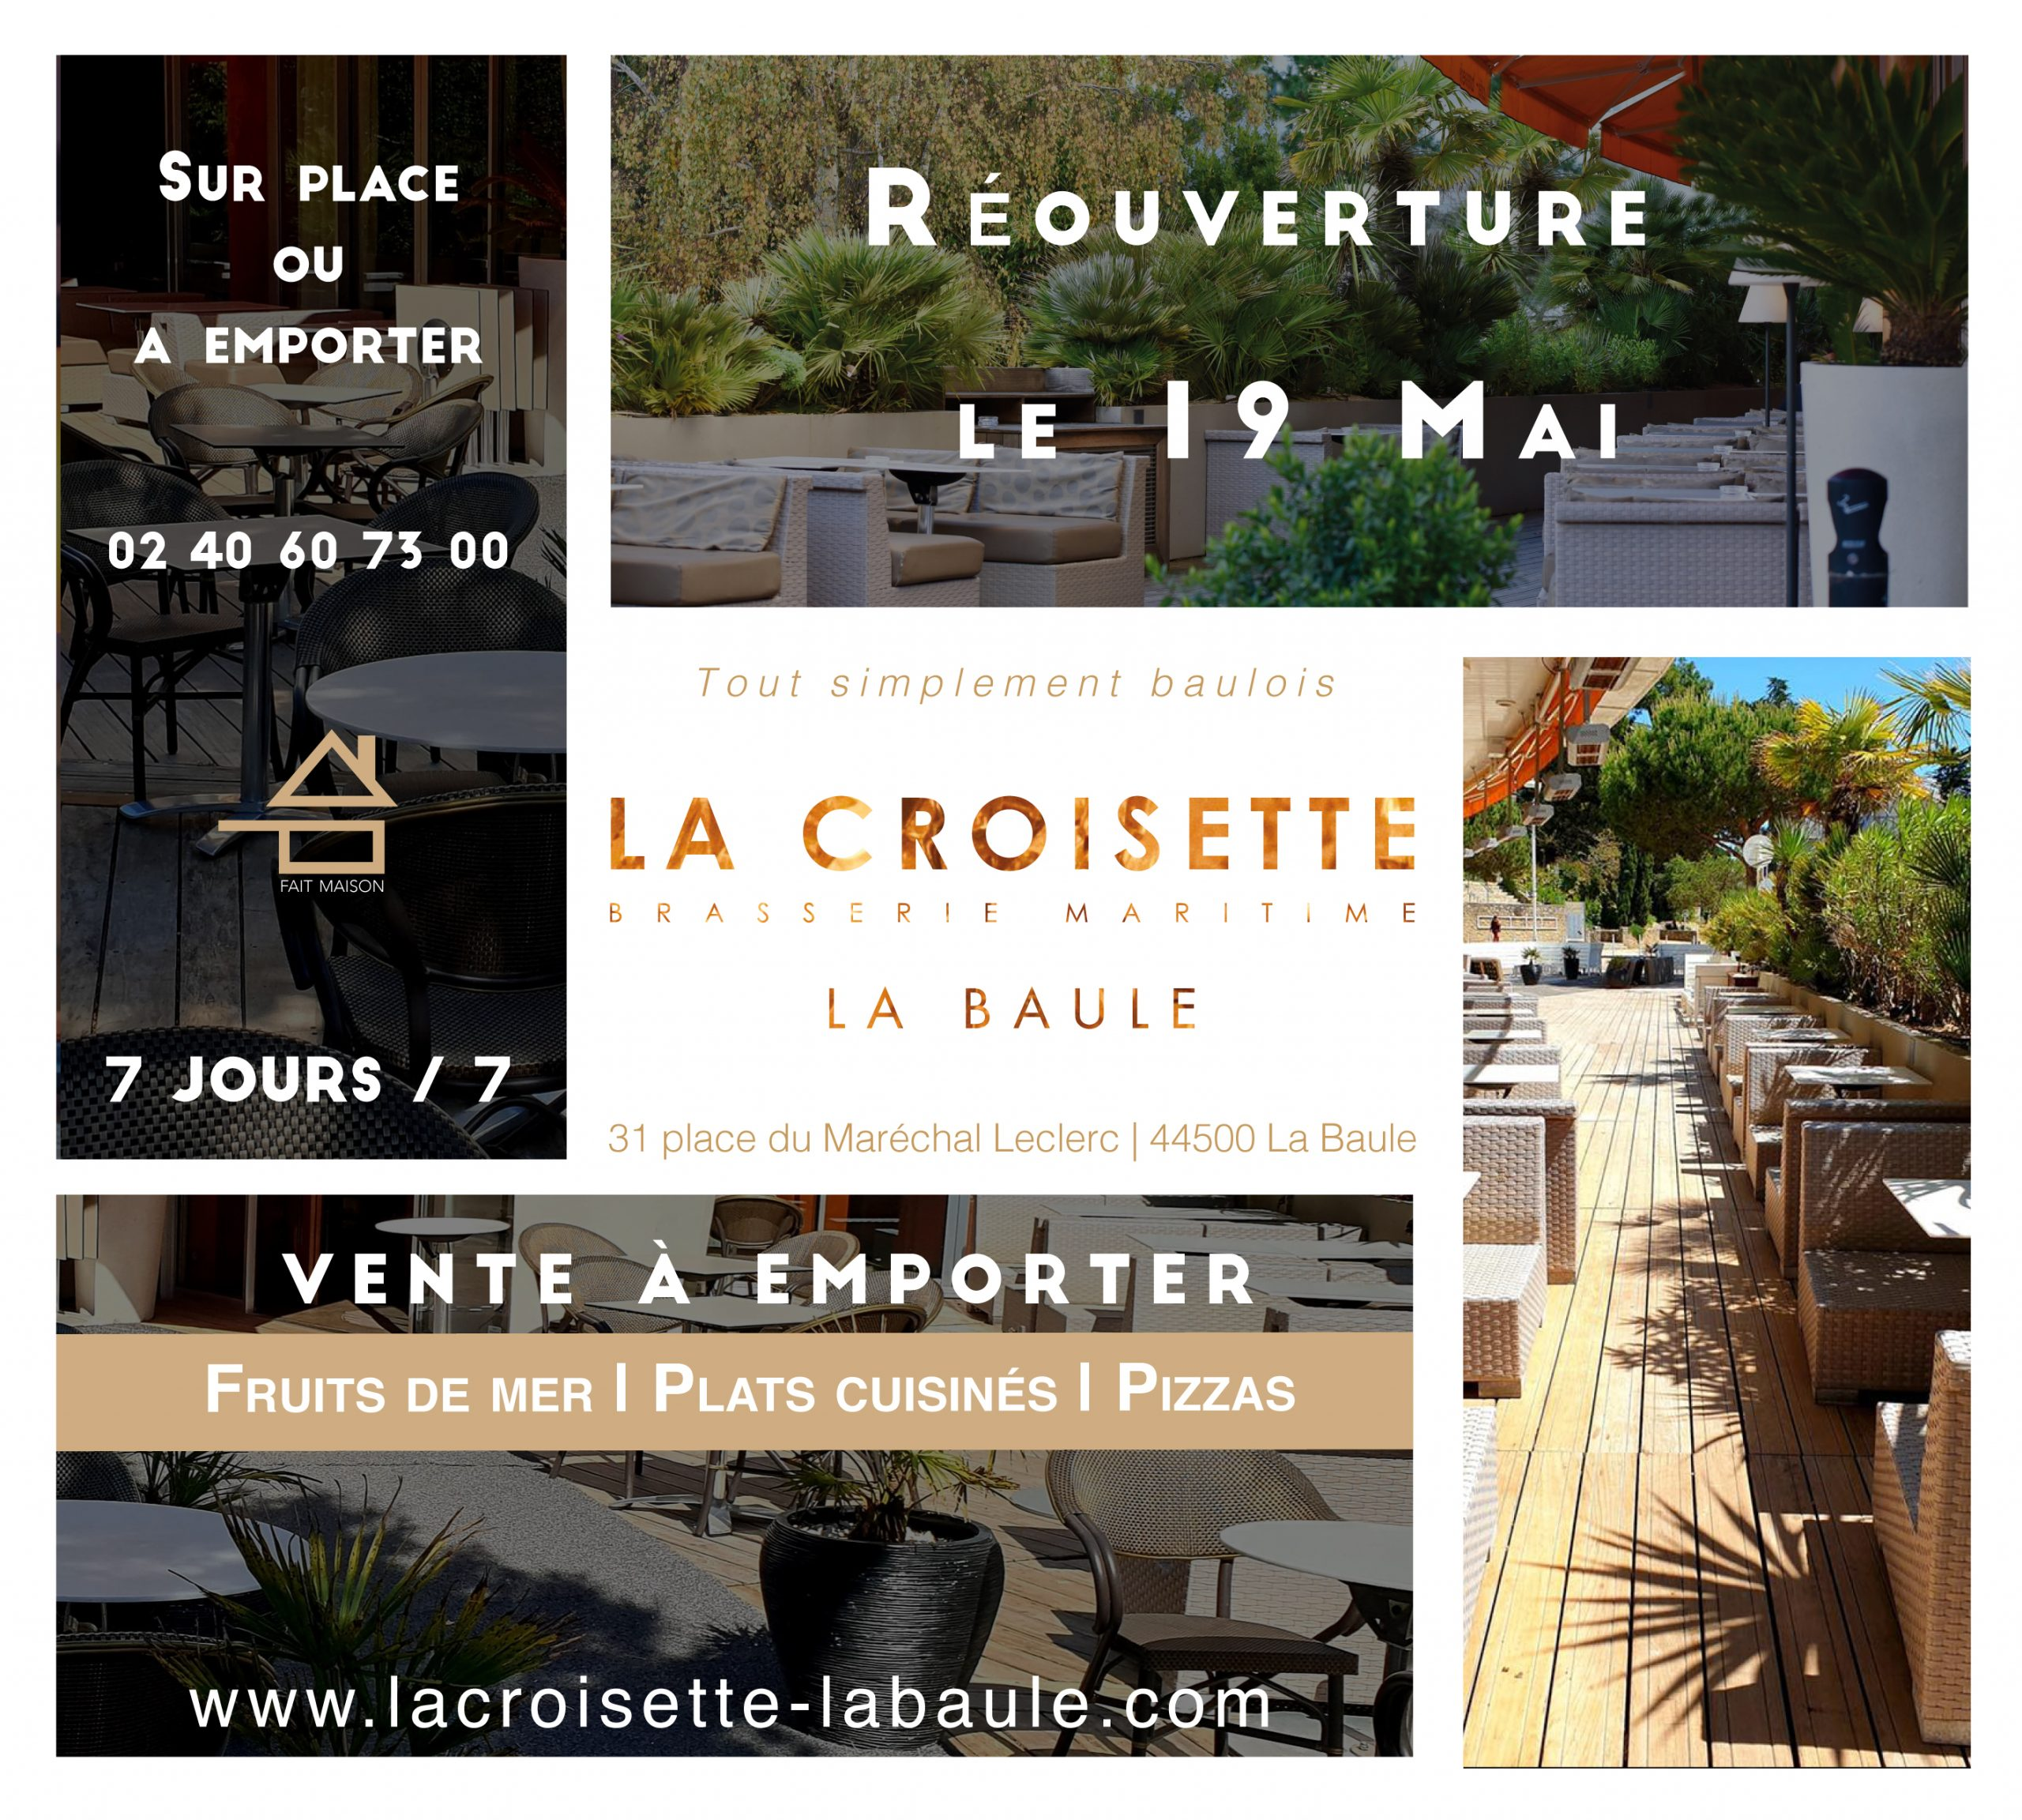 reouverture-lc-2021